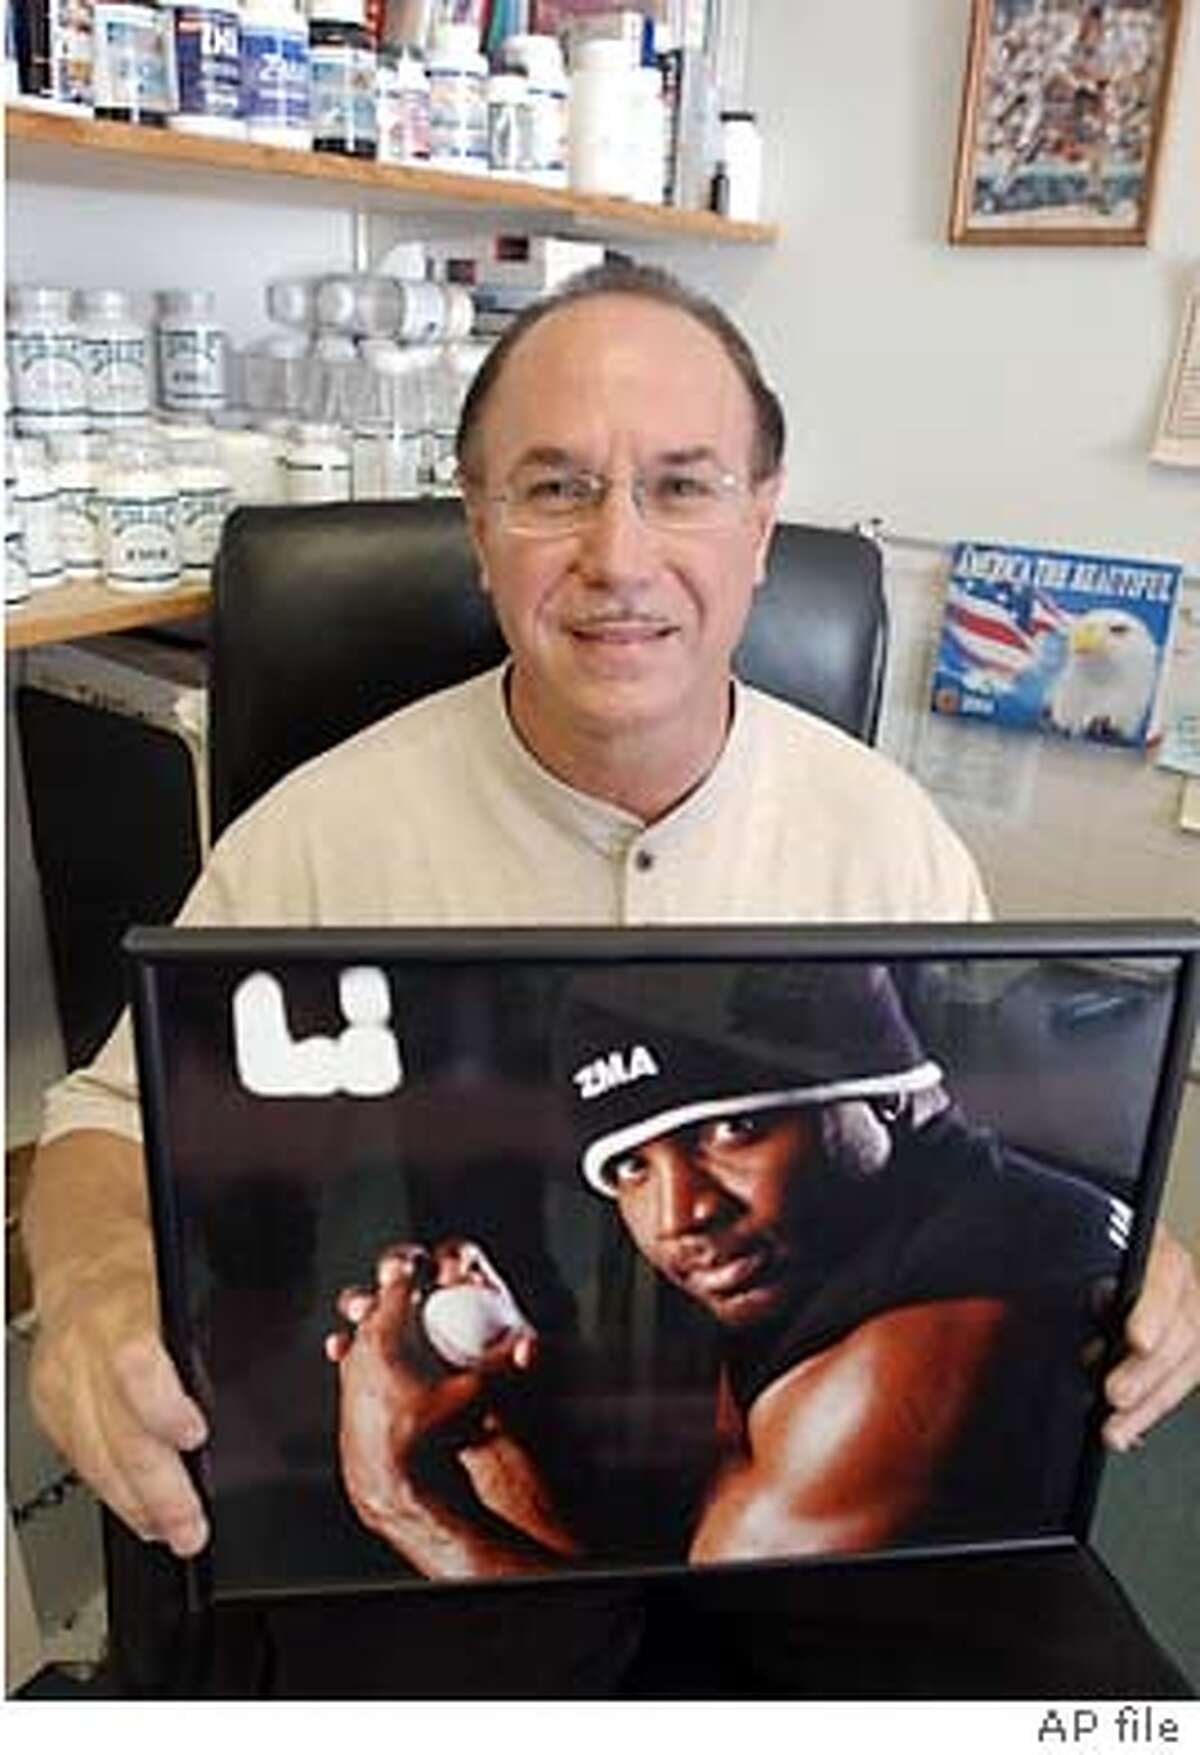 BALCO founder Victor Conte holds a photo of San Francisco Giants' Barry Bonds with the drug ZMA that Conte makes on Bond's hat, at his office in Burlingame, Calif., Tuesday, Oct. 21, 2003. Conte has been accused by the U.S. Anti-Doping Agency of supplying athletes with a new designer steroid that is rocking the world of track and field. Bonds will testify in December before a federal grand jury that has subpoenaed several dozen athletes as part of its probe into a laboratory that supplies some of the nation's top sports stars with nutritional supplements. In background is other drugs BALCO produces. (AP Photo/Paul Sakuma) Victor Conte is a former bassist for Tower of Power who turned into a nutritional guru. Victor Conte is a former bassist for Tower of Power who turned into a nutritional guru. Victor Conte is a former bassist for Tower of Power who turned into a nutritional guru.